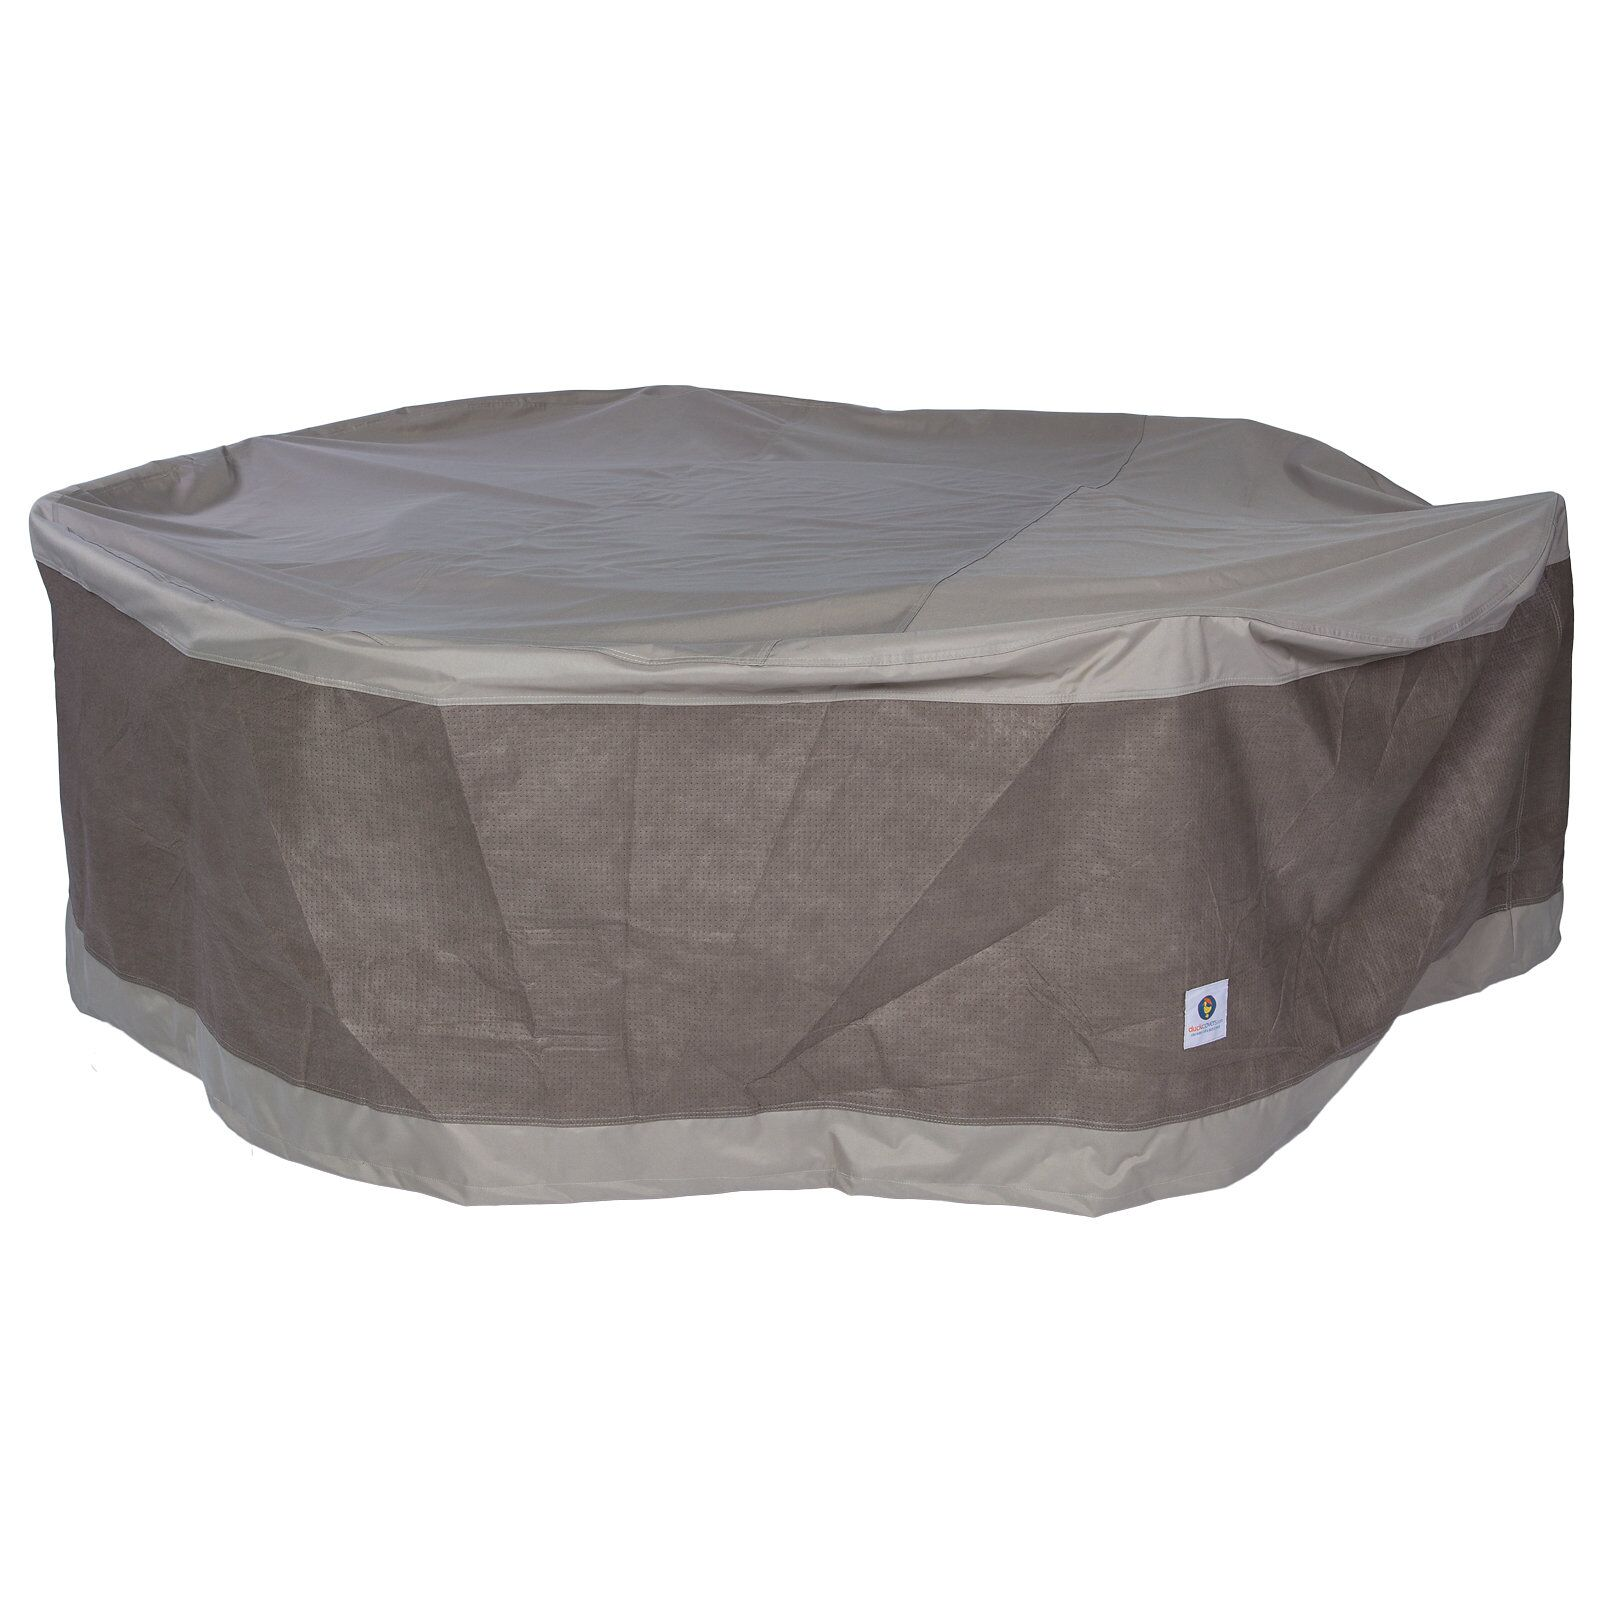 Dining Set Cover Size: 29